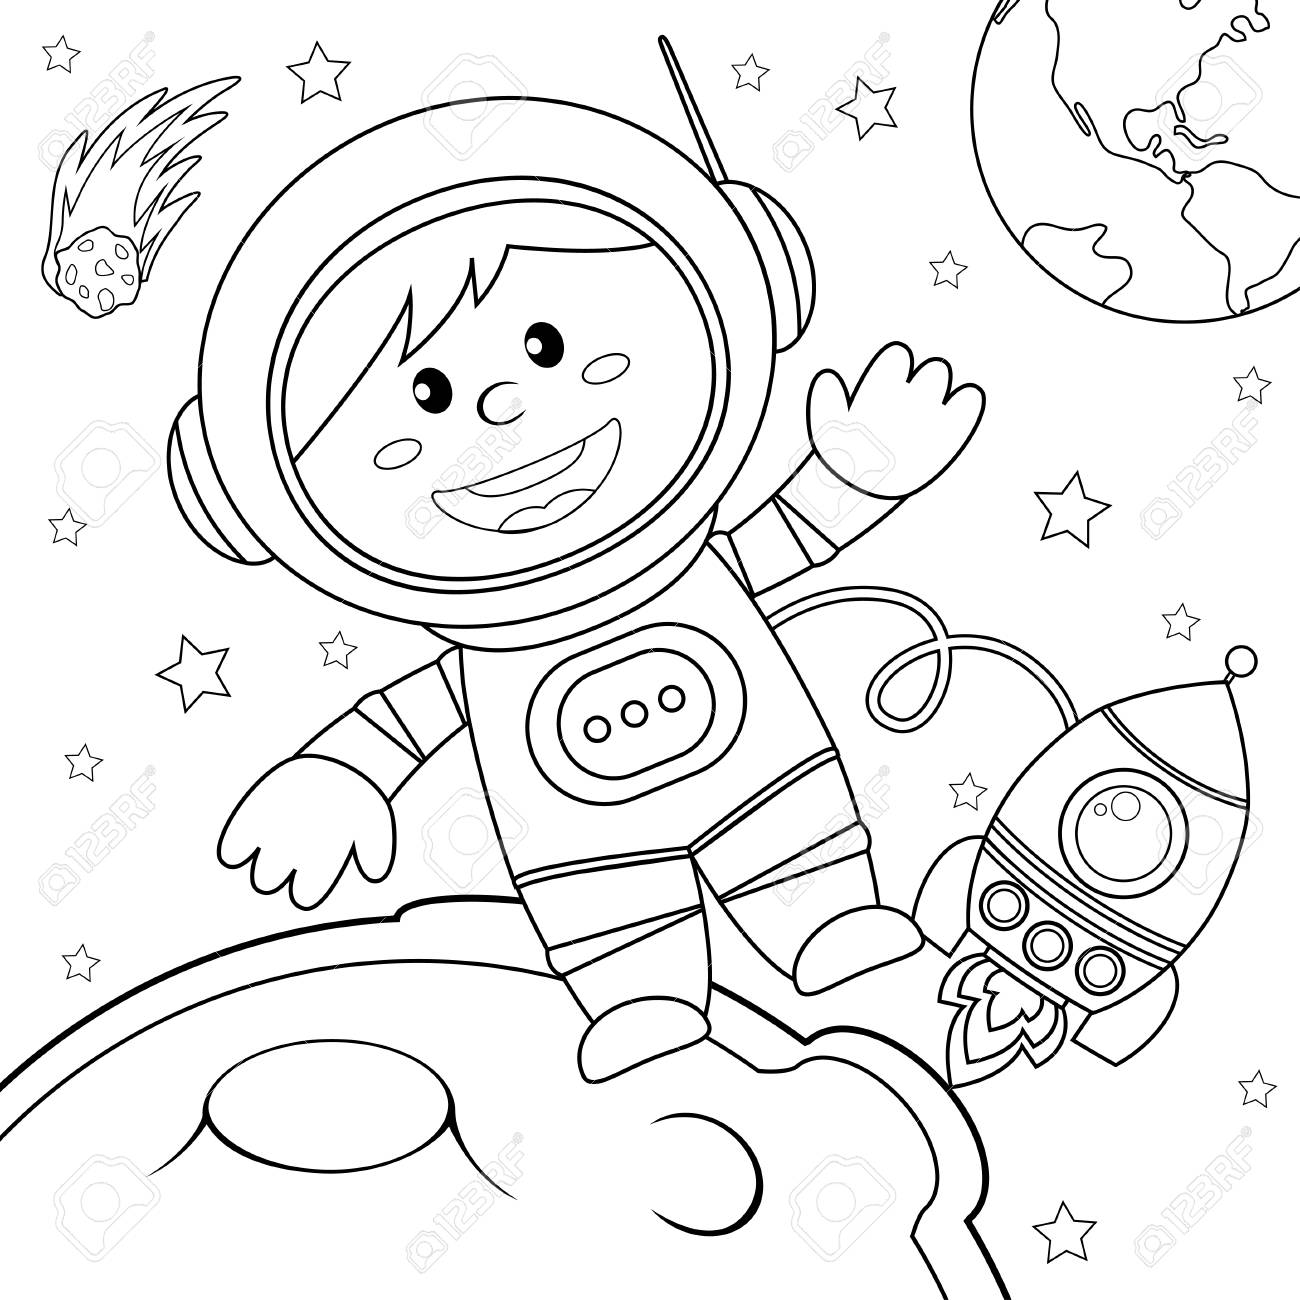 Astronaut Clipart Black And White.